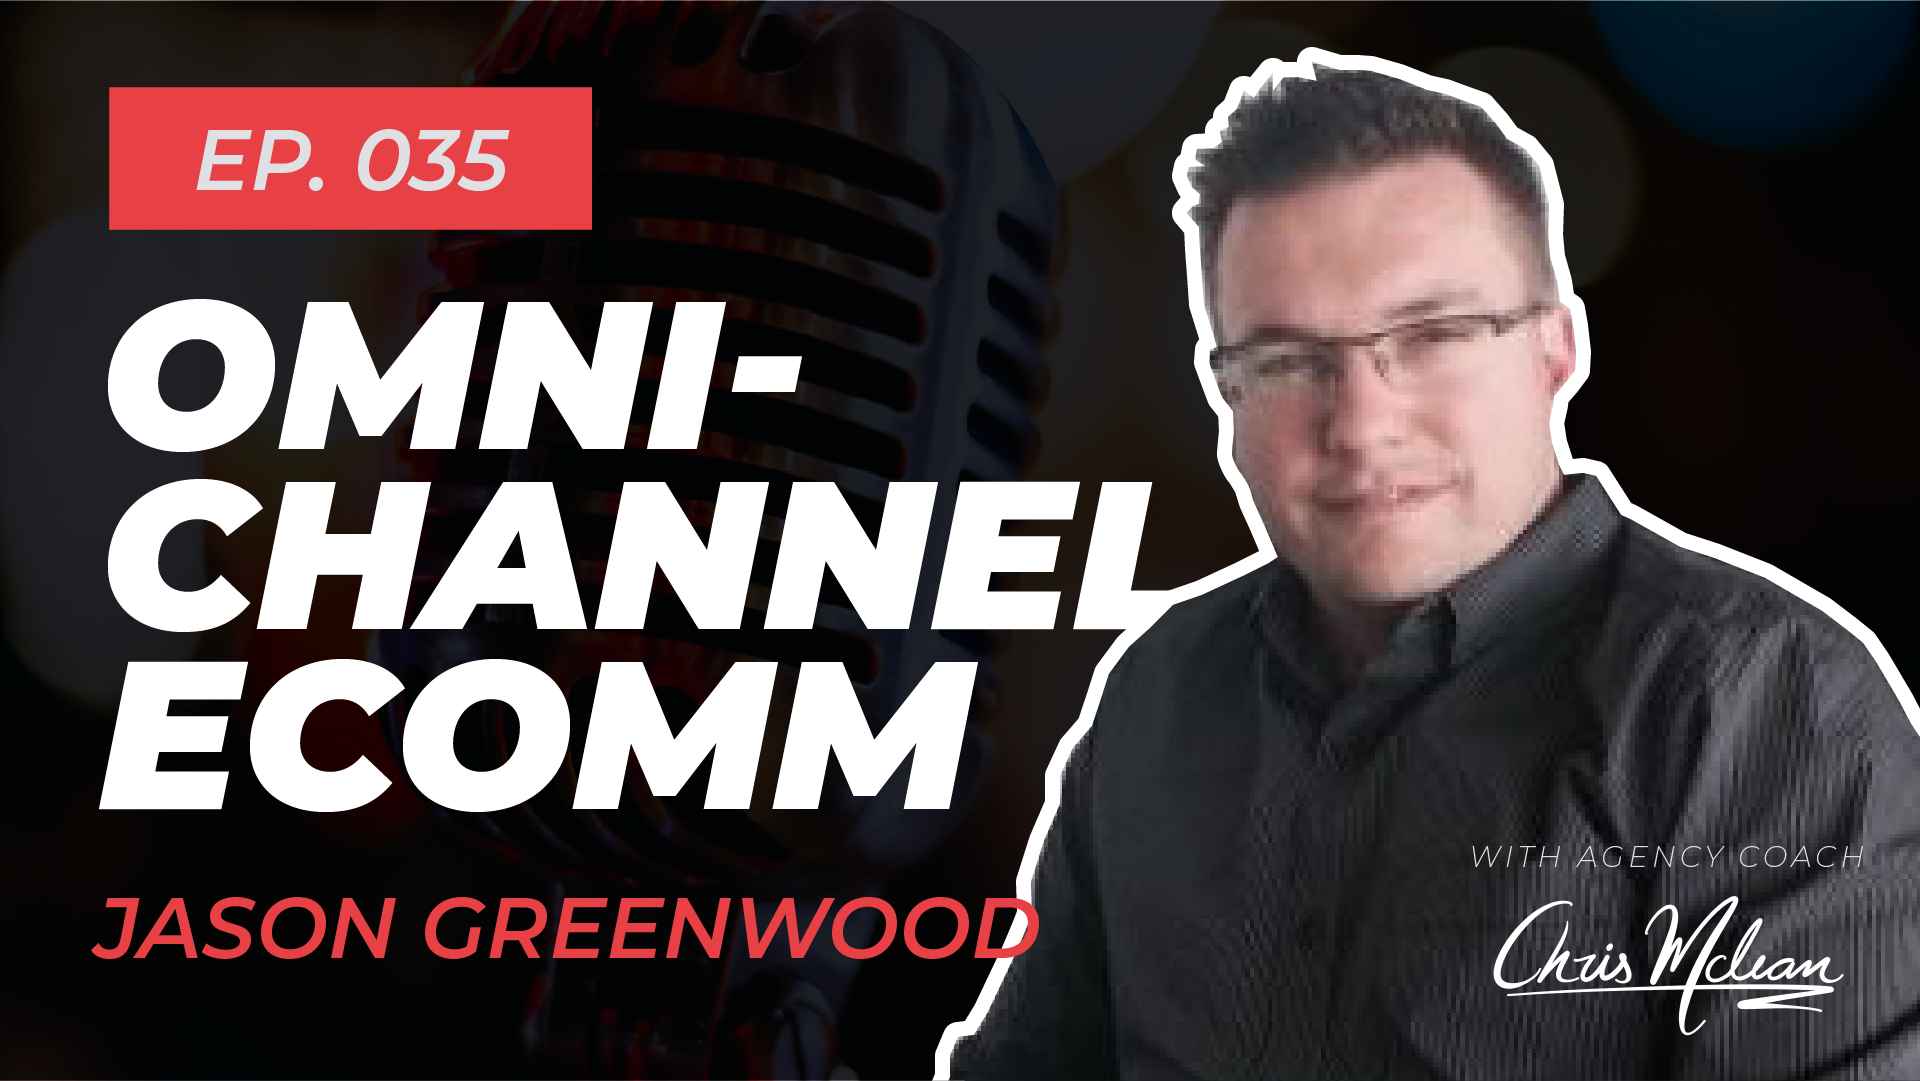 EP035 | Omni-Channel Ecomm Experience with Jason Greenwood